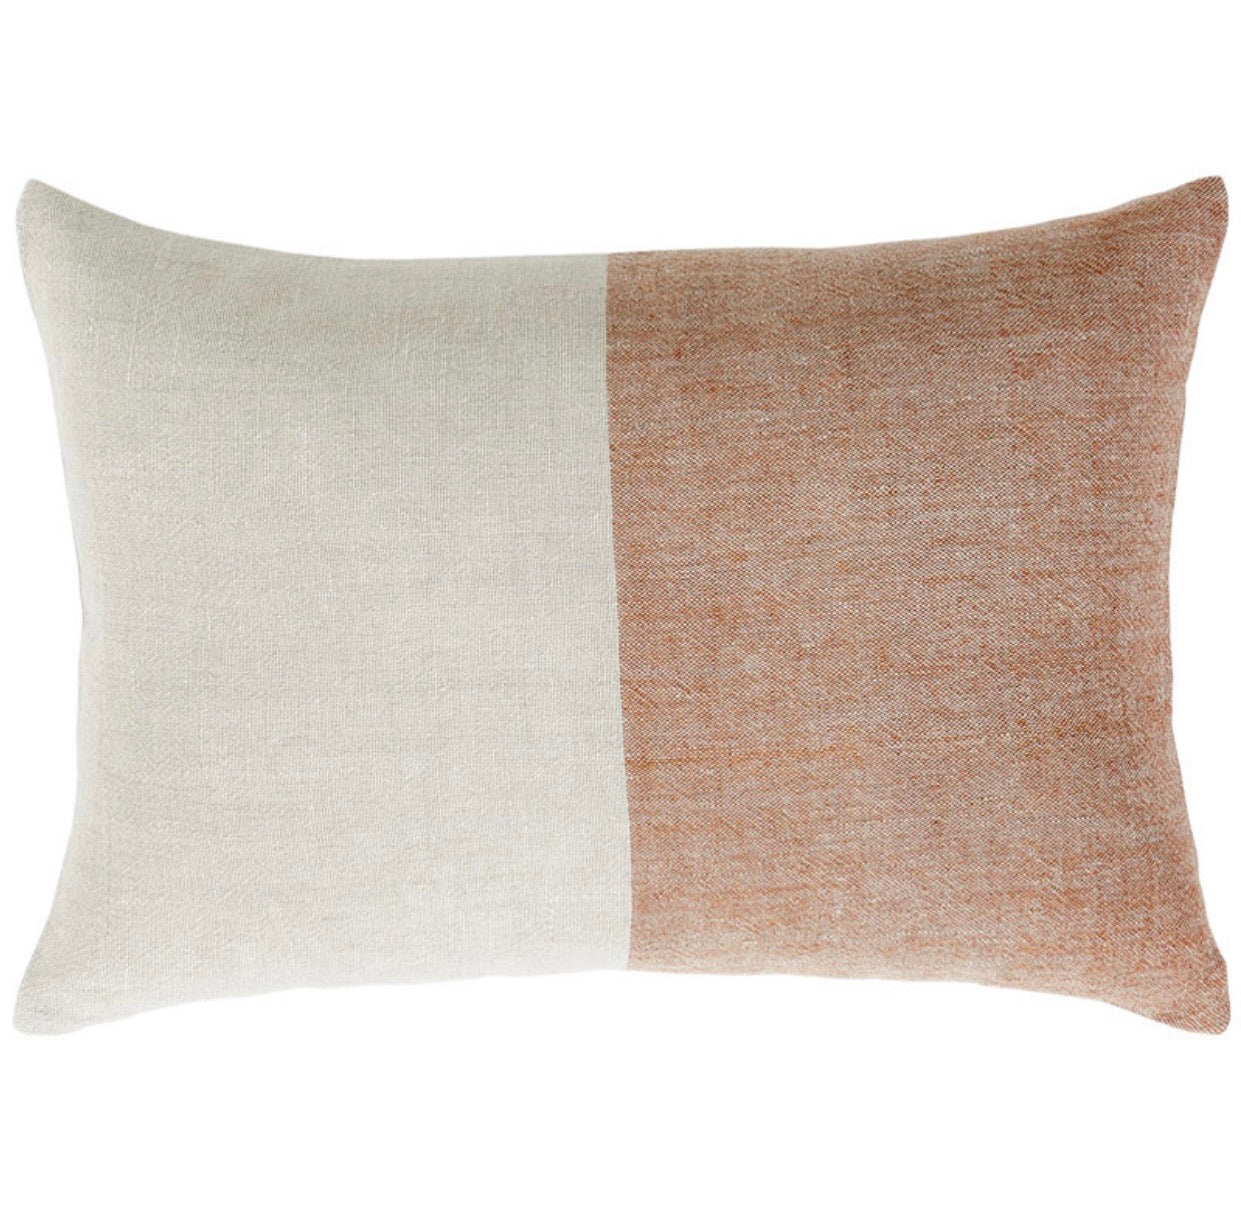 Two Tone Linen Pillow in Orange